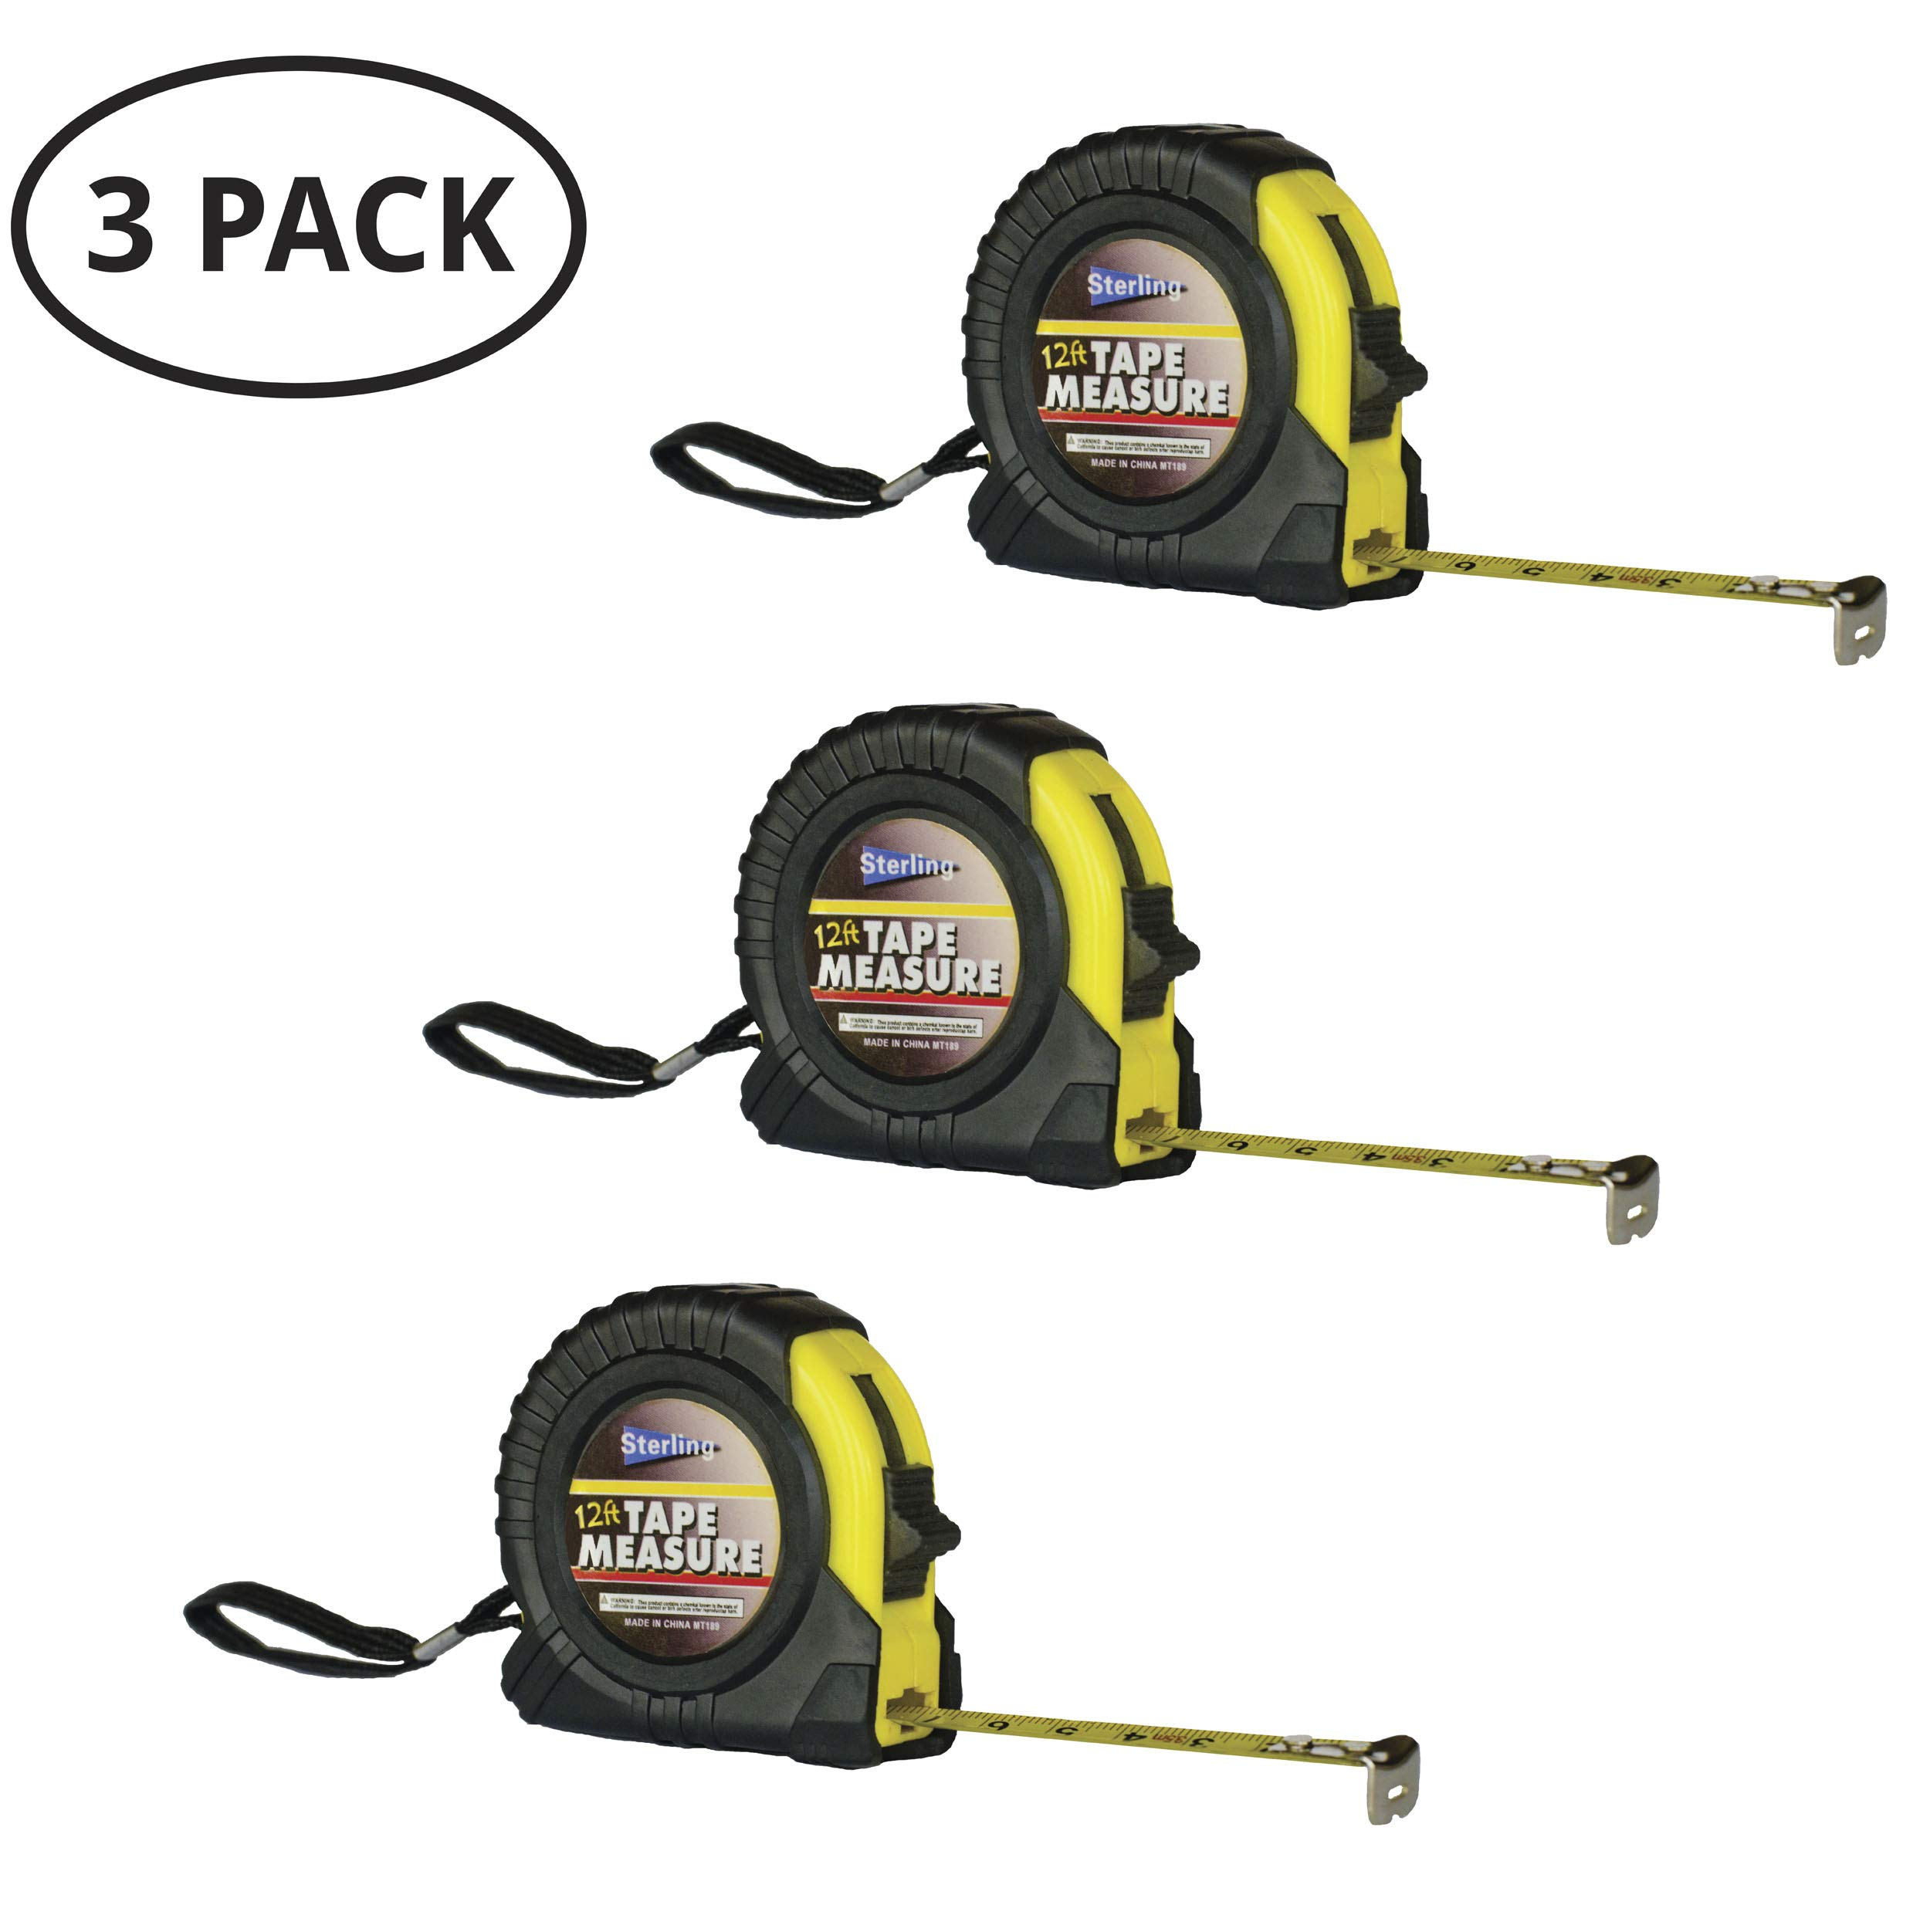 Tape Measure 3 Pack - 12 foot retractable small measuring tape with inch and cm, accurate, easy to read numbers and fractions with belt clip, metric, mini multi set by Daily Living Products